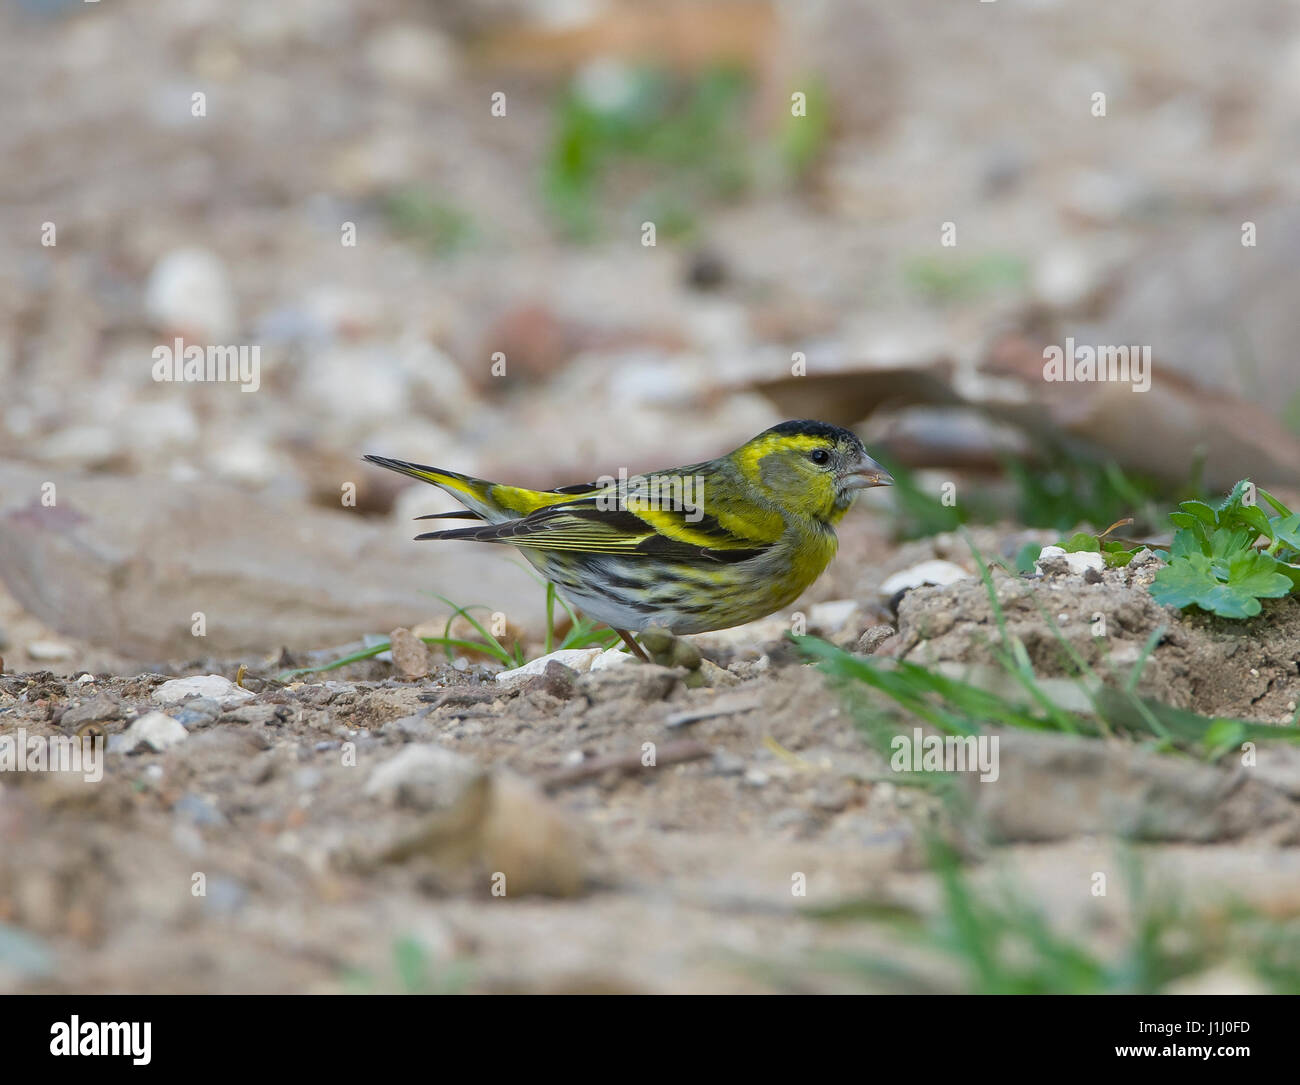 Male Siskin Carduelis spines in winter plumage feeding on ground - Stock Image